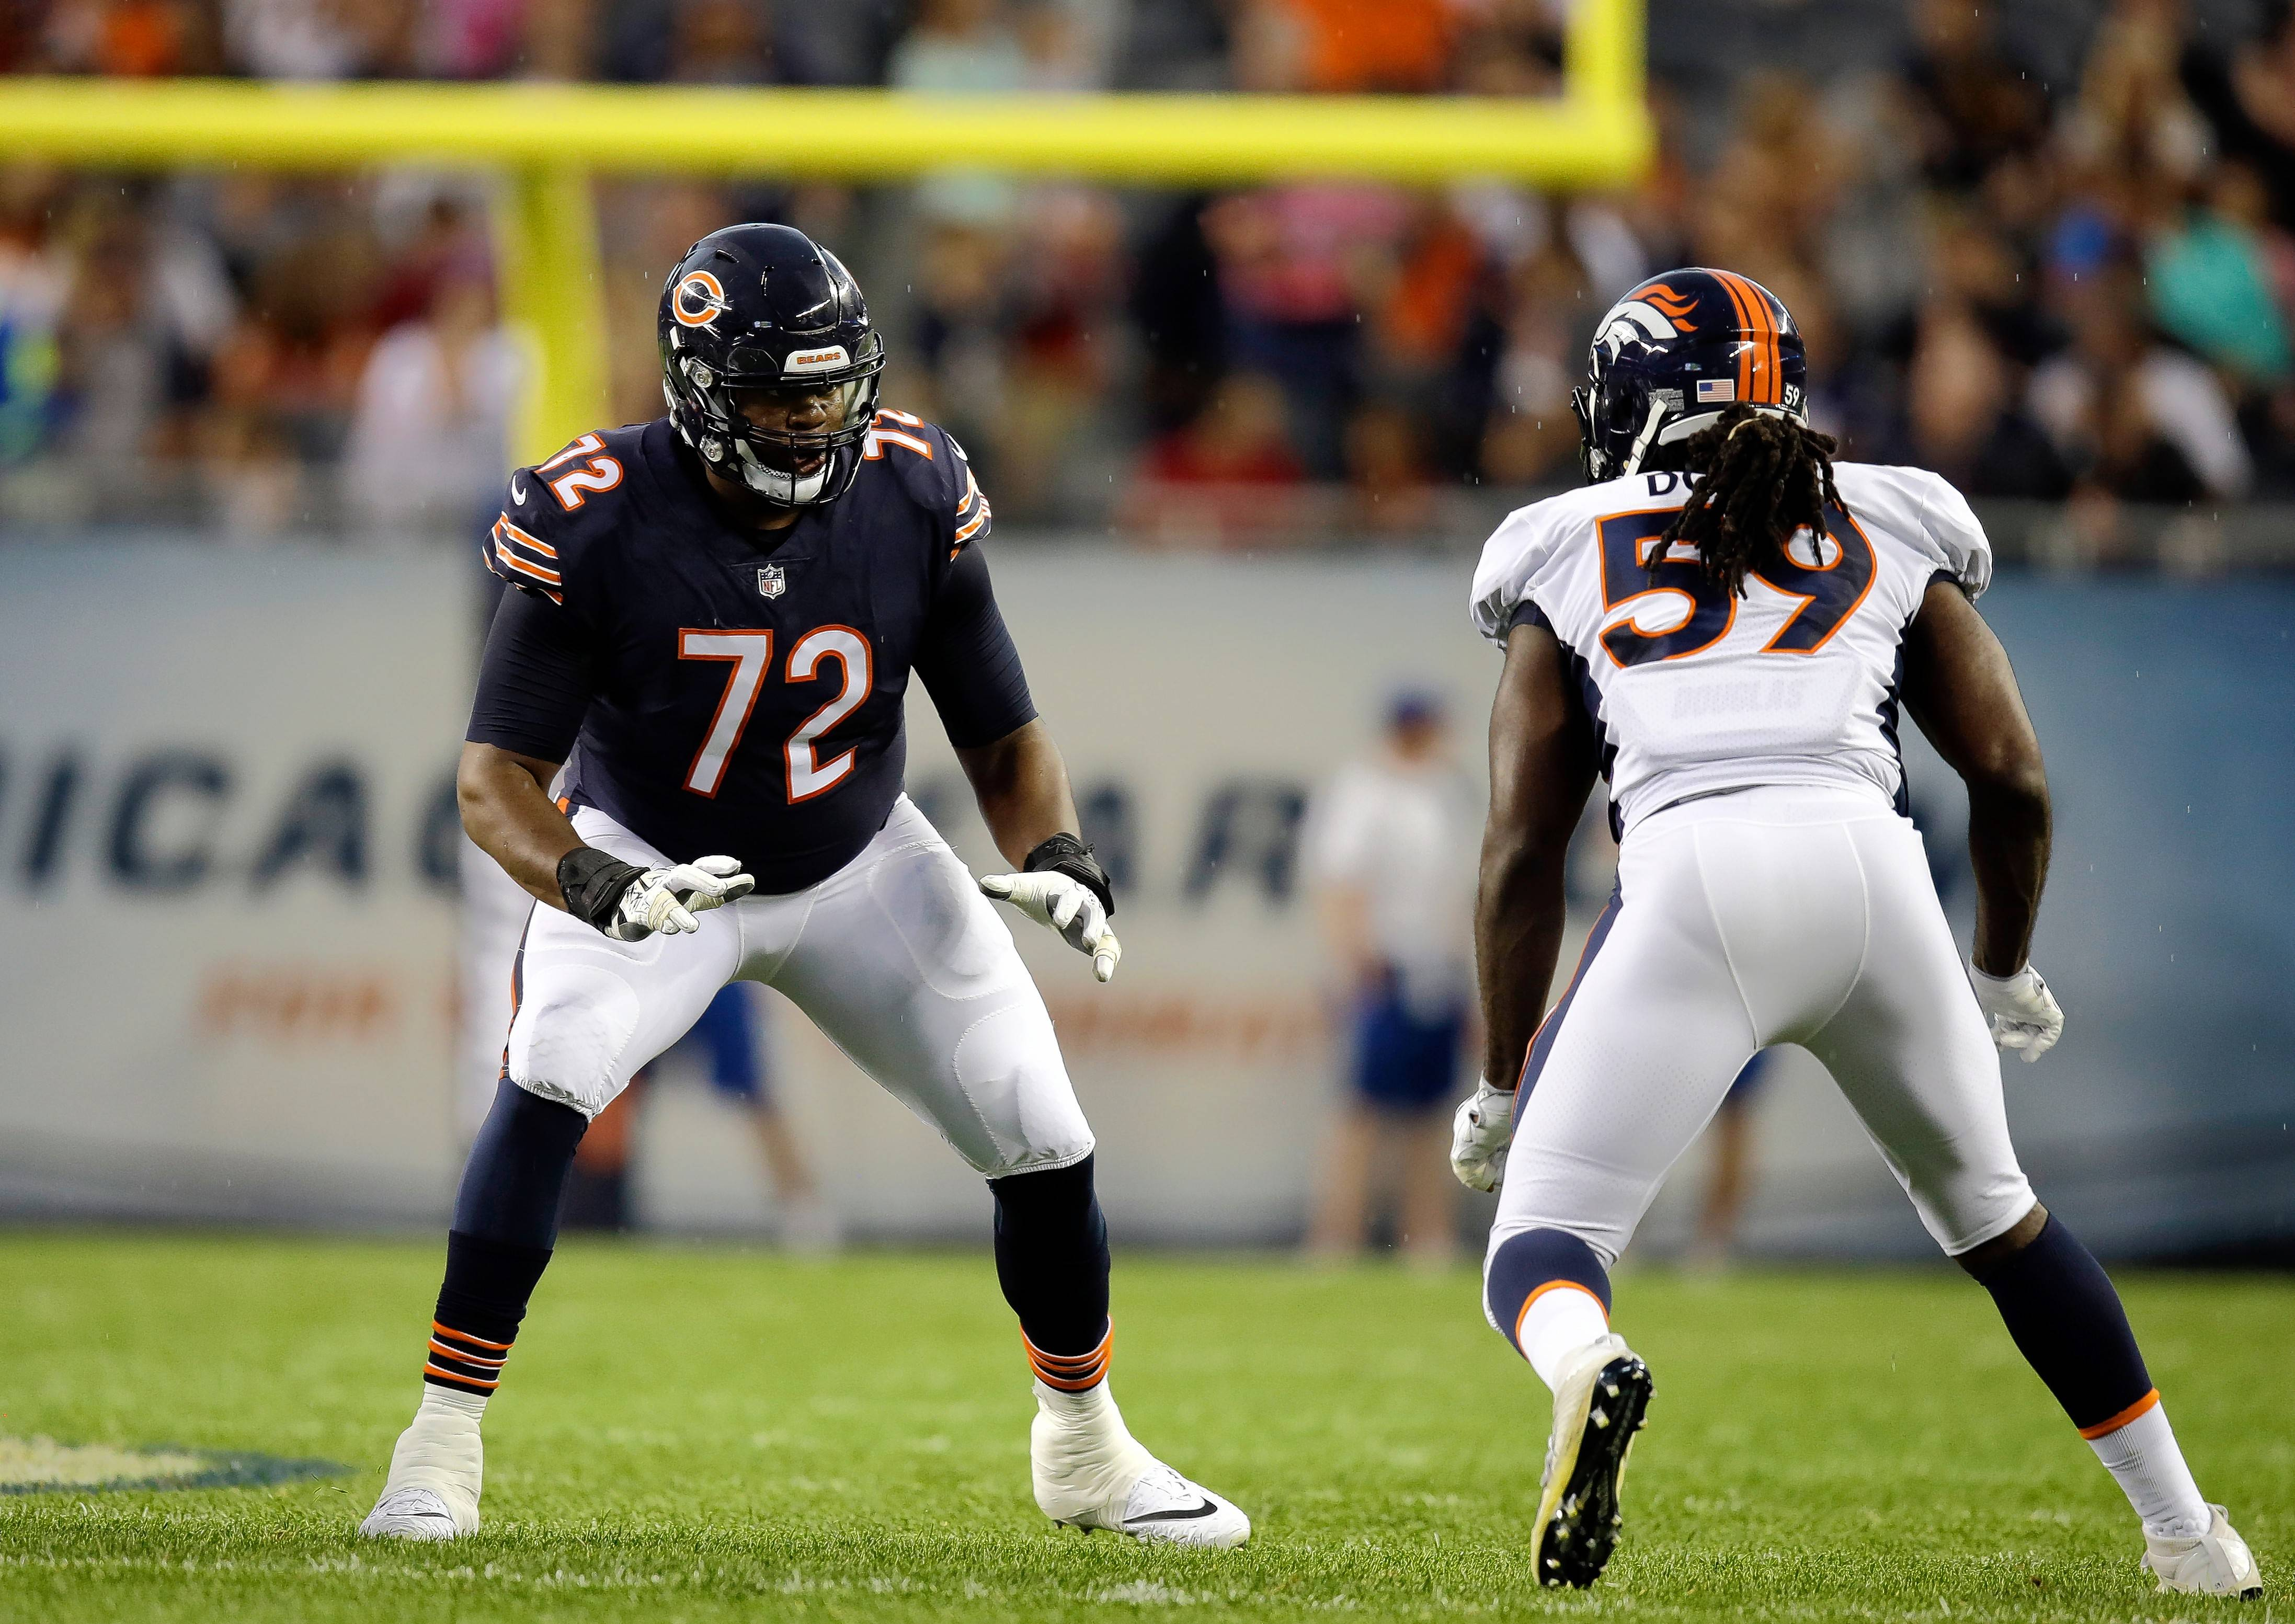 Chicago Bears tackle Charles Leno has signed a four-year contract extension.